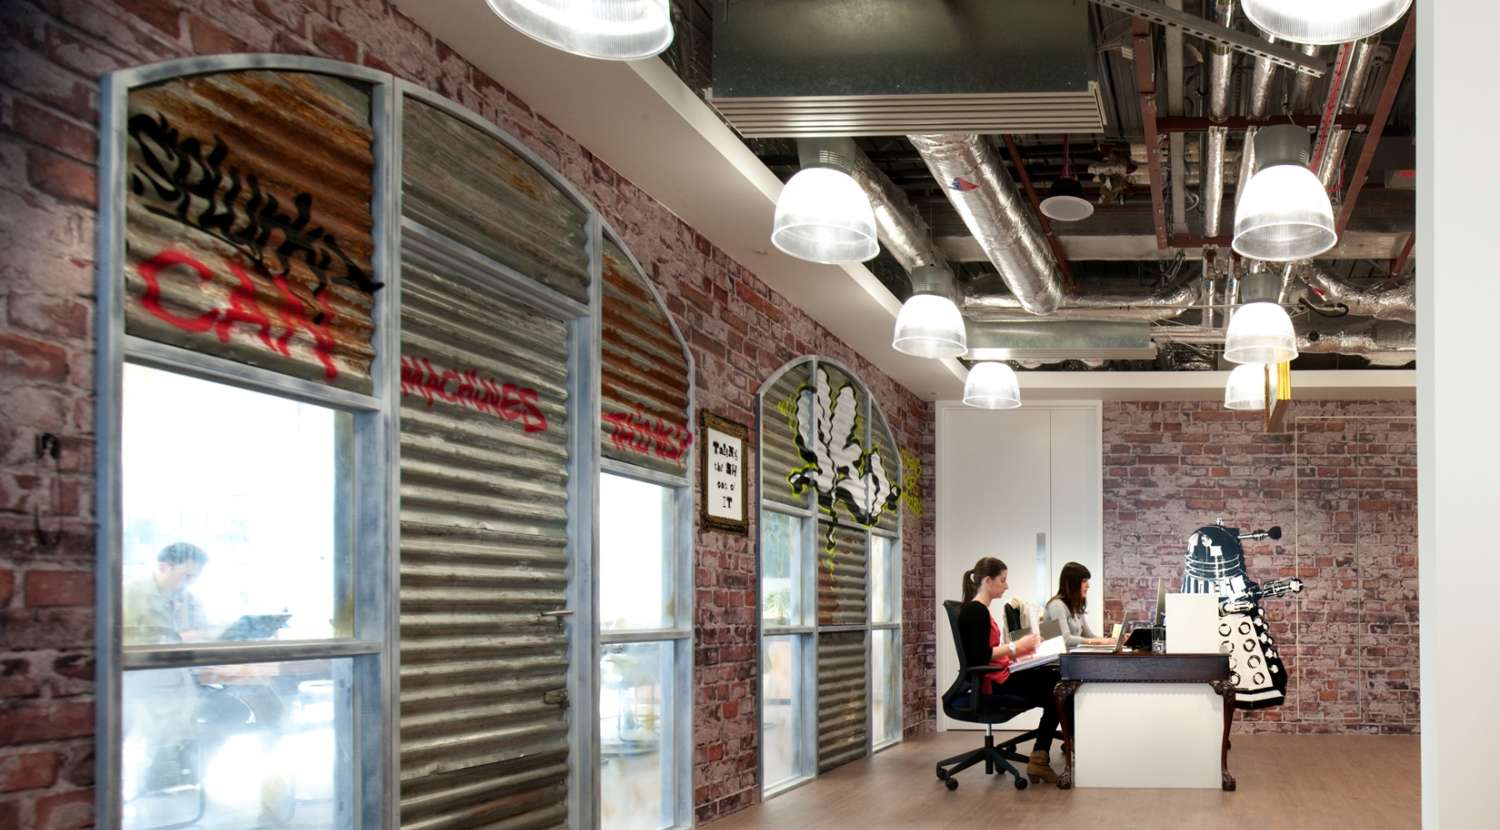 Railway arches provide character to this funky fit out